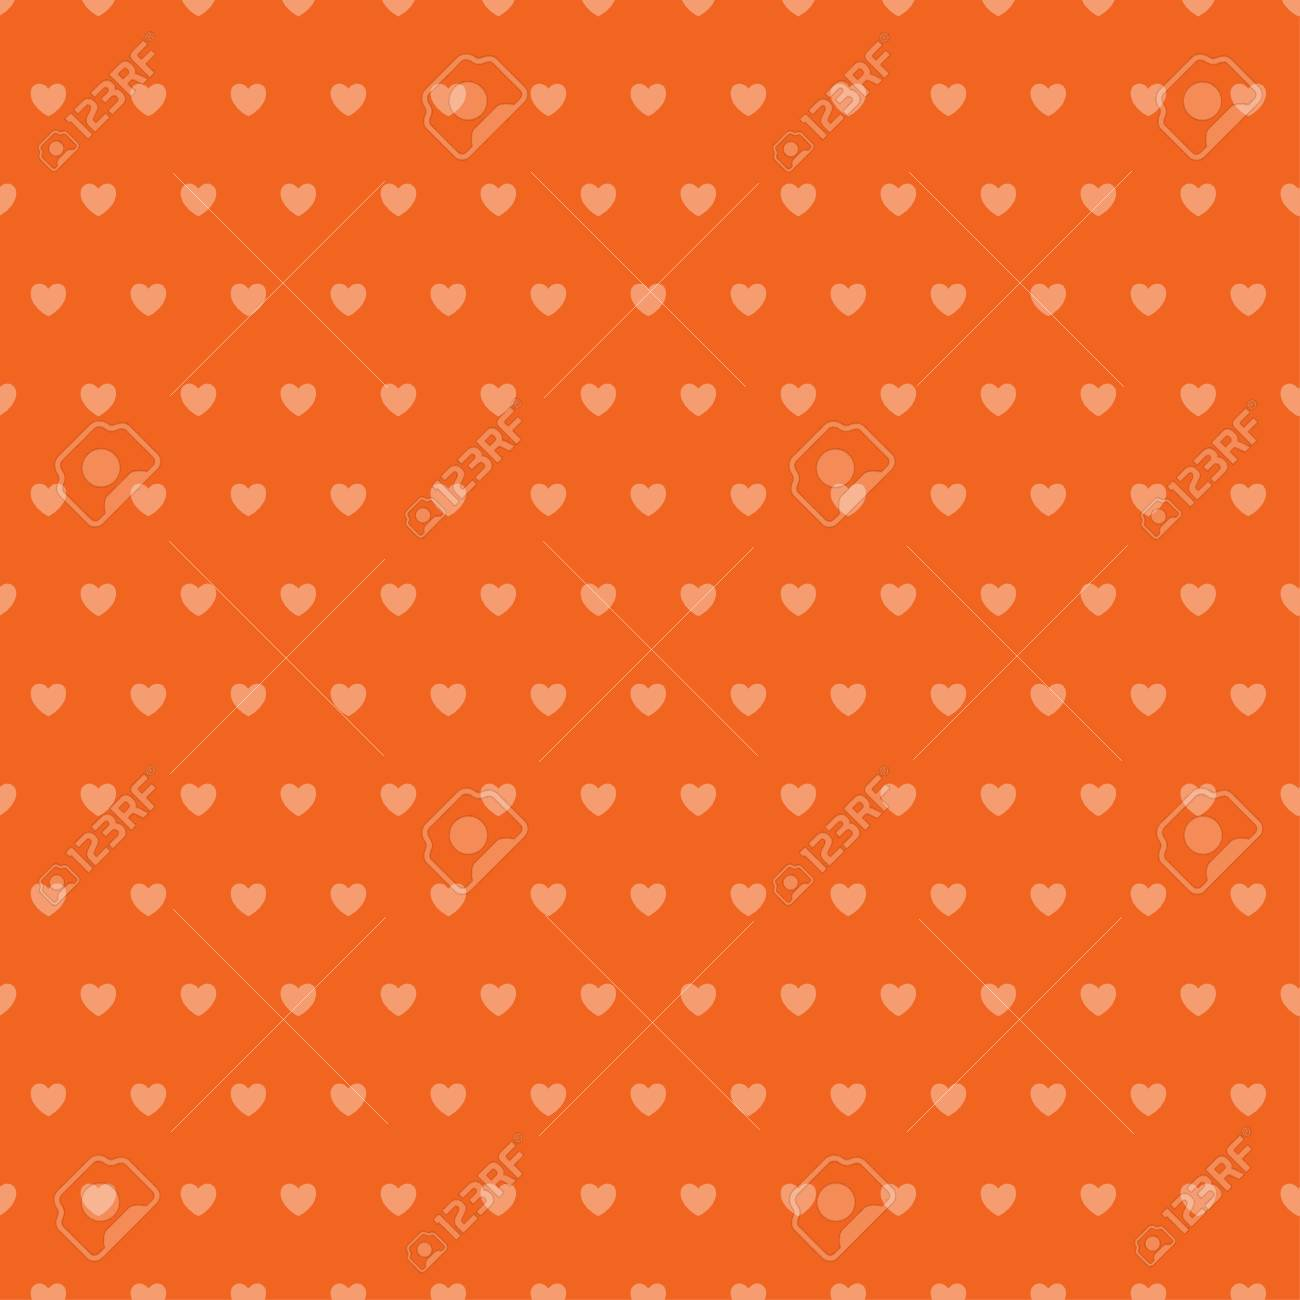 Abstract heart seamless pattern. - 114708489